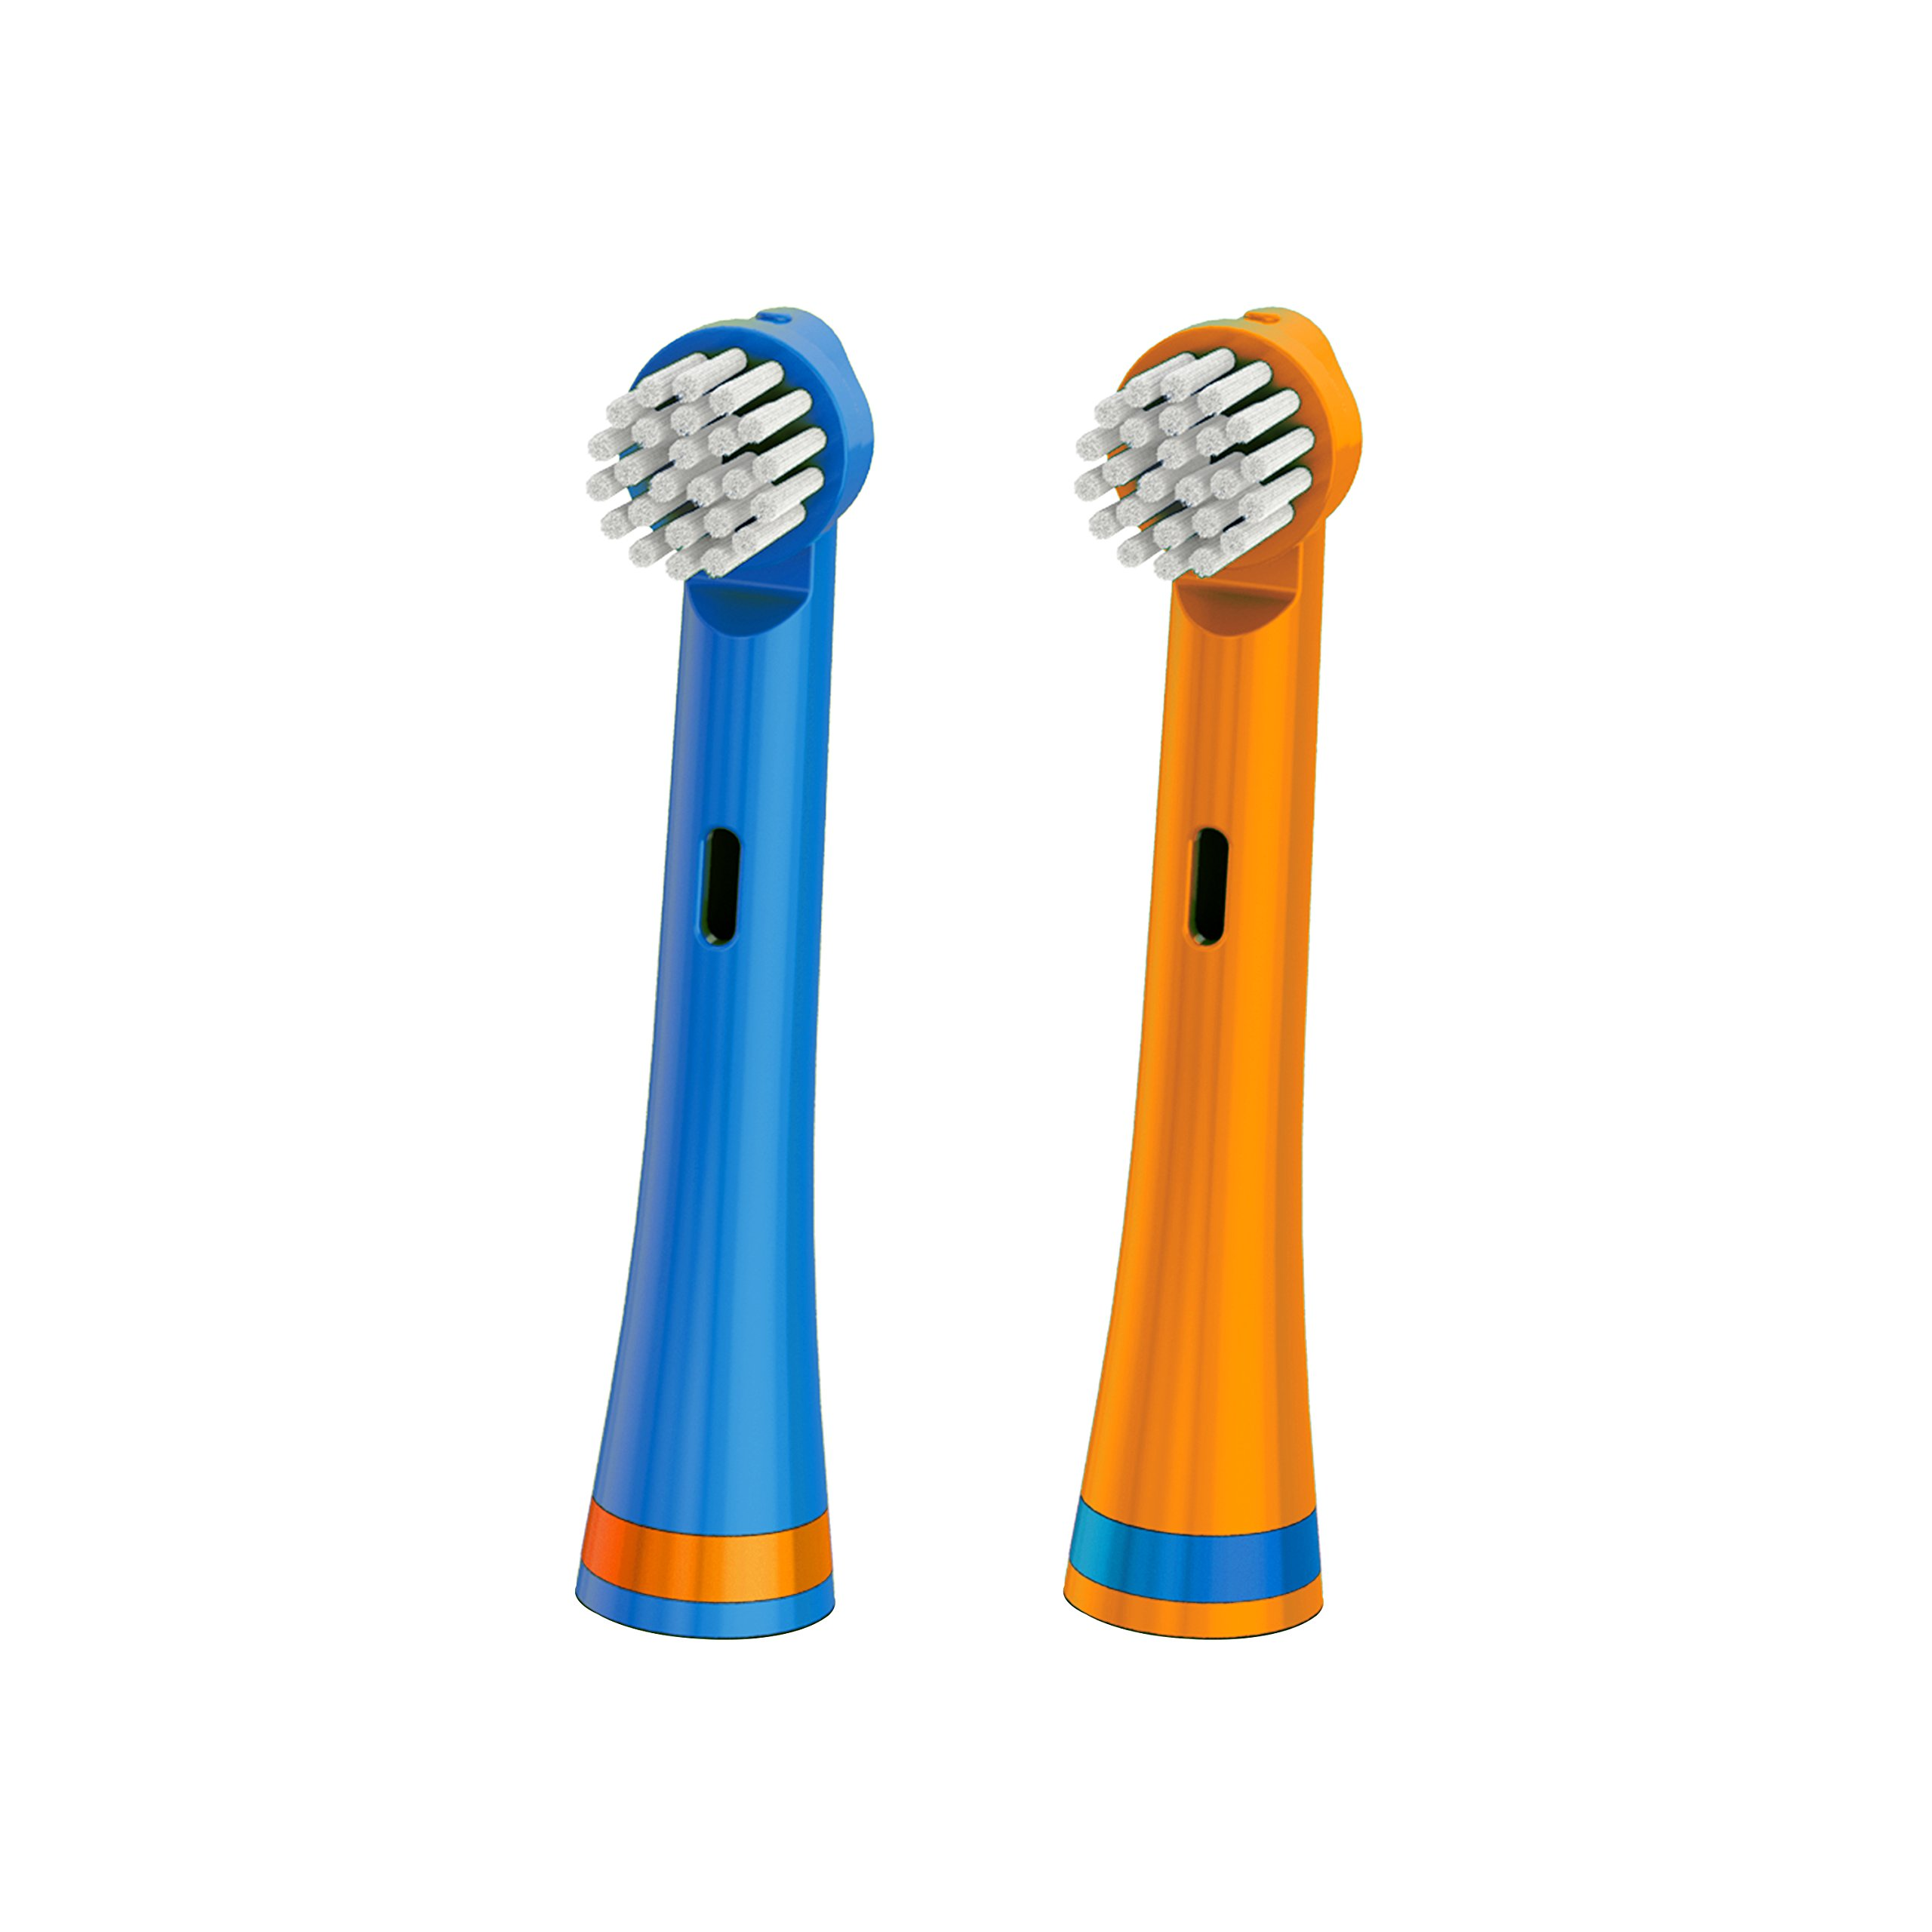 Brusheez Electronic Toothbrush Replacement Brush Heads (Buddy the Bear)–2 Pack